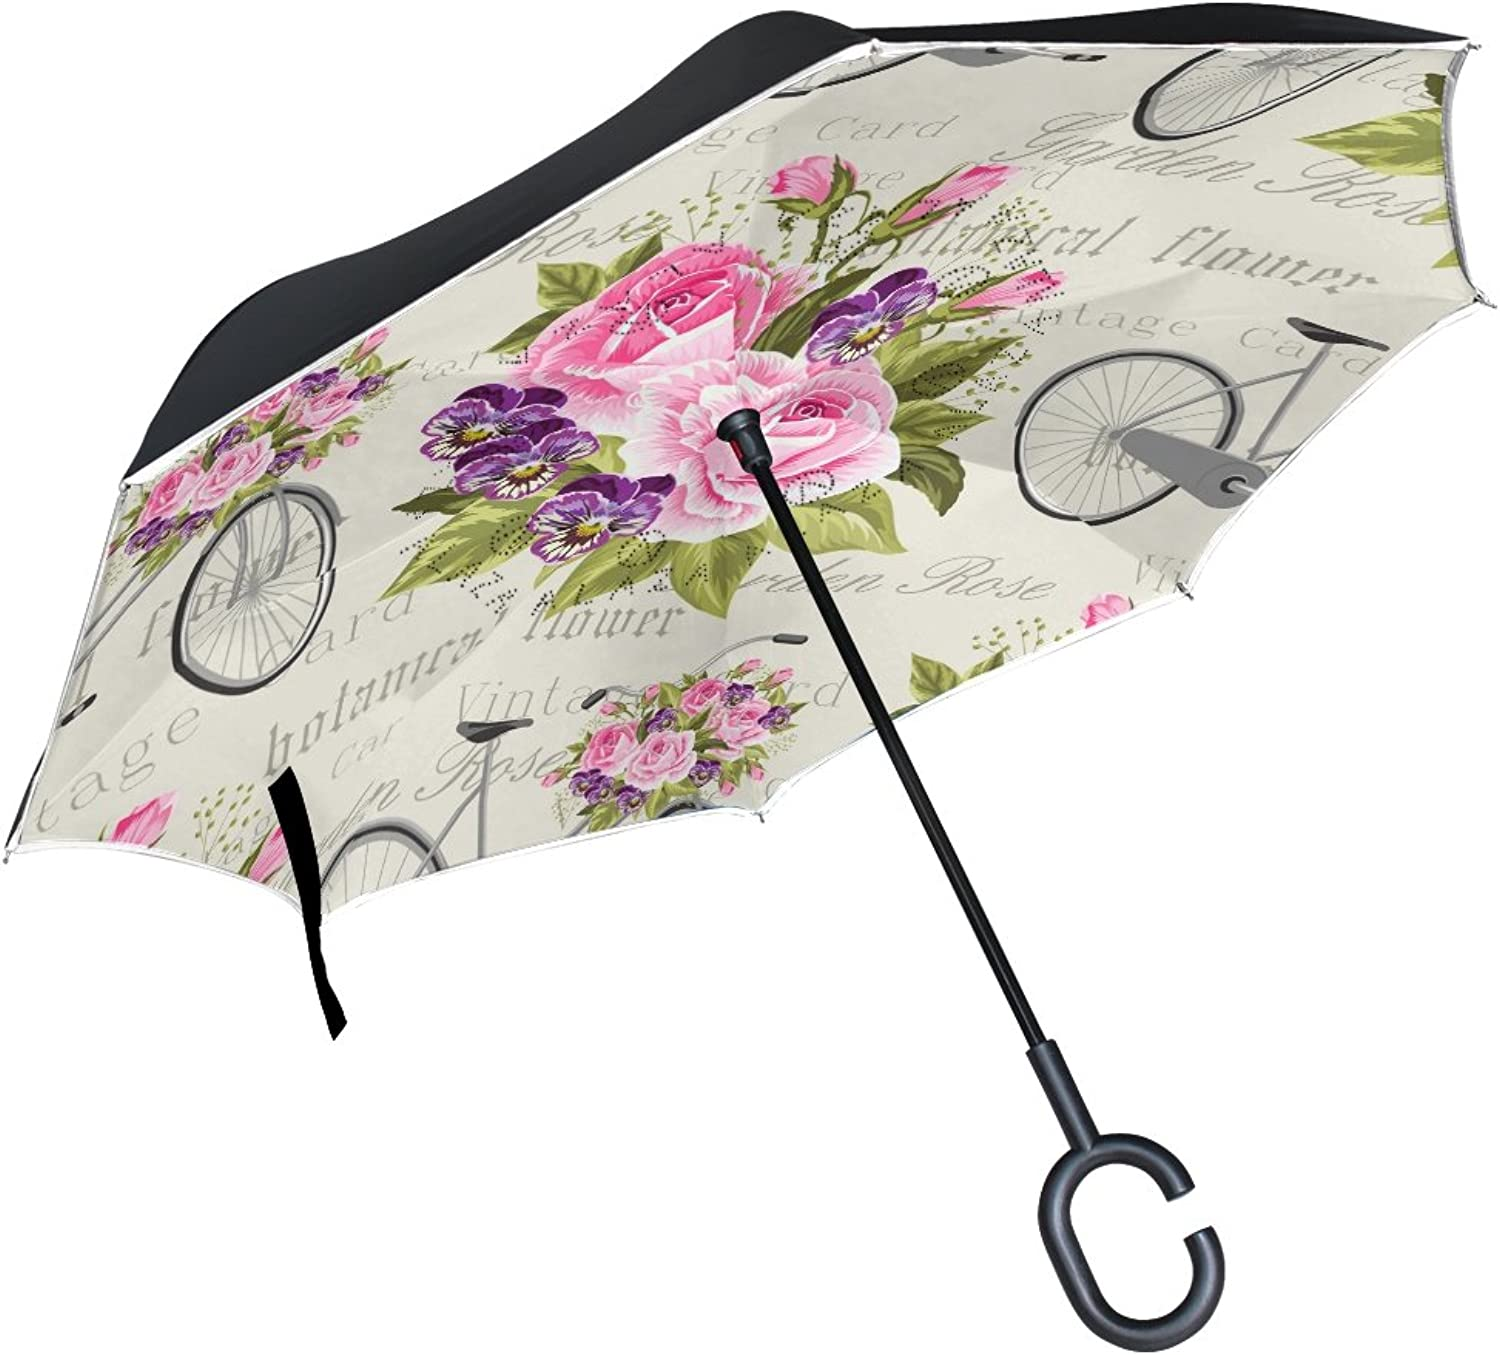 Mydaily Double Layer Ingreened Umbrella Cars Reverse Umbrella pink Bicycle Vintage Floral Windproof UV Proof Travel Outdoor Umbrella